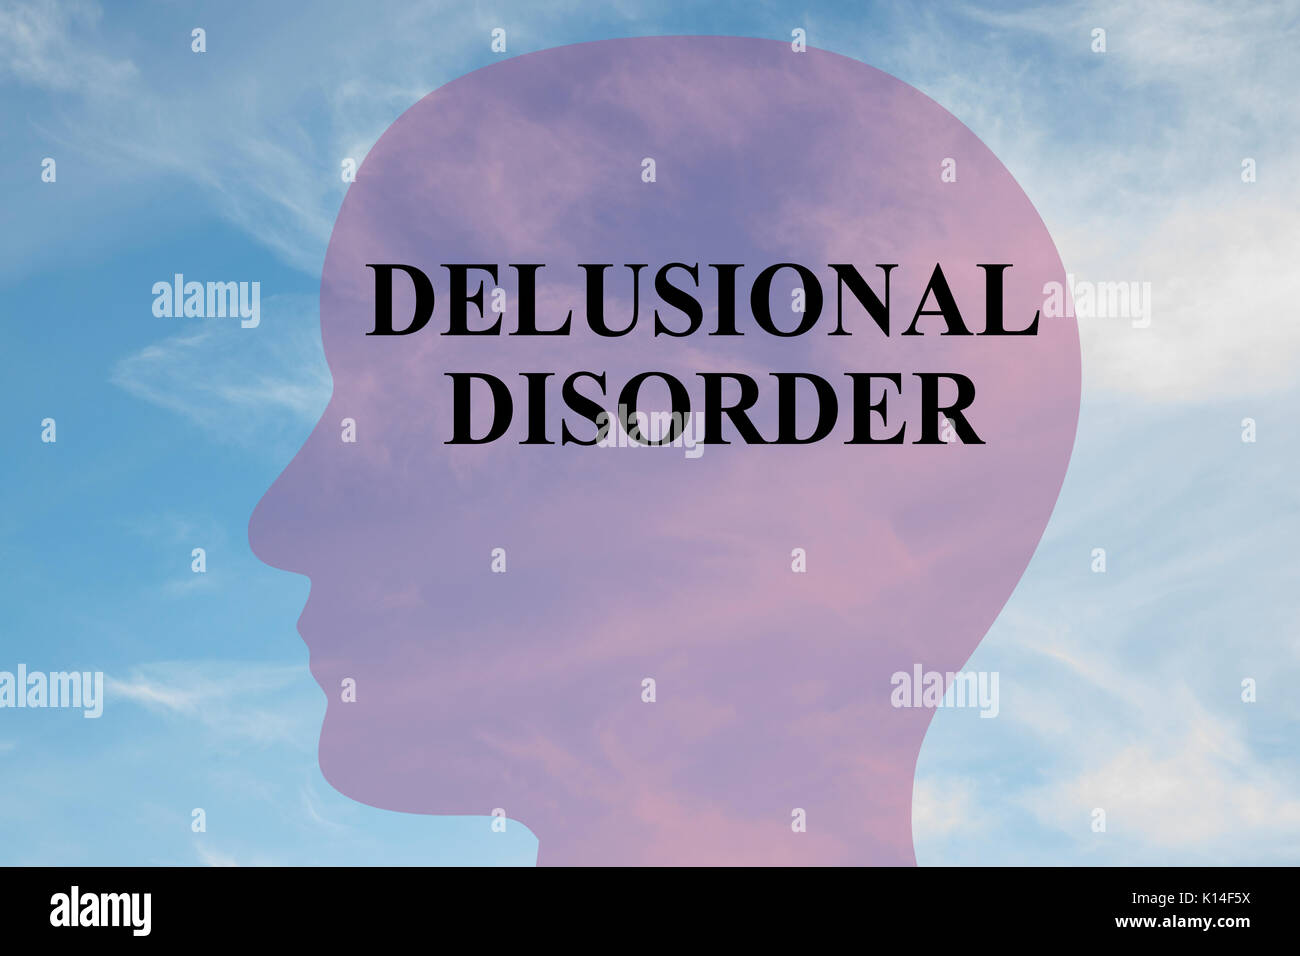 shutter island and delusional disorder